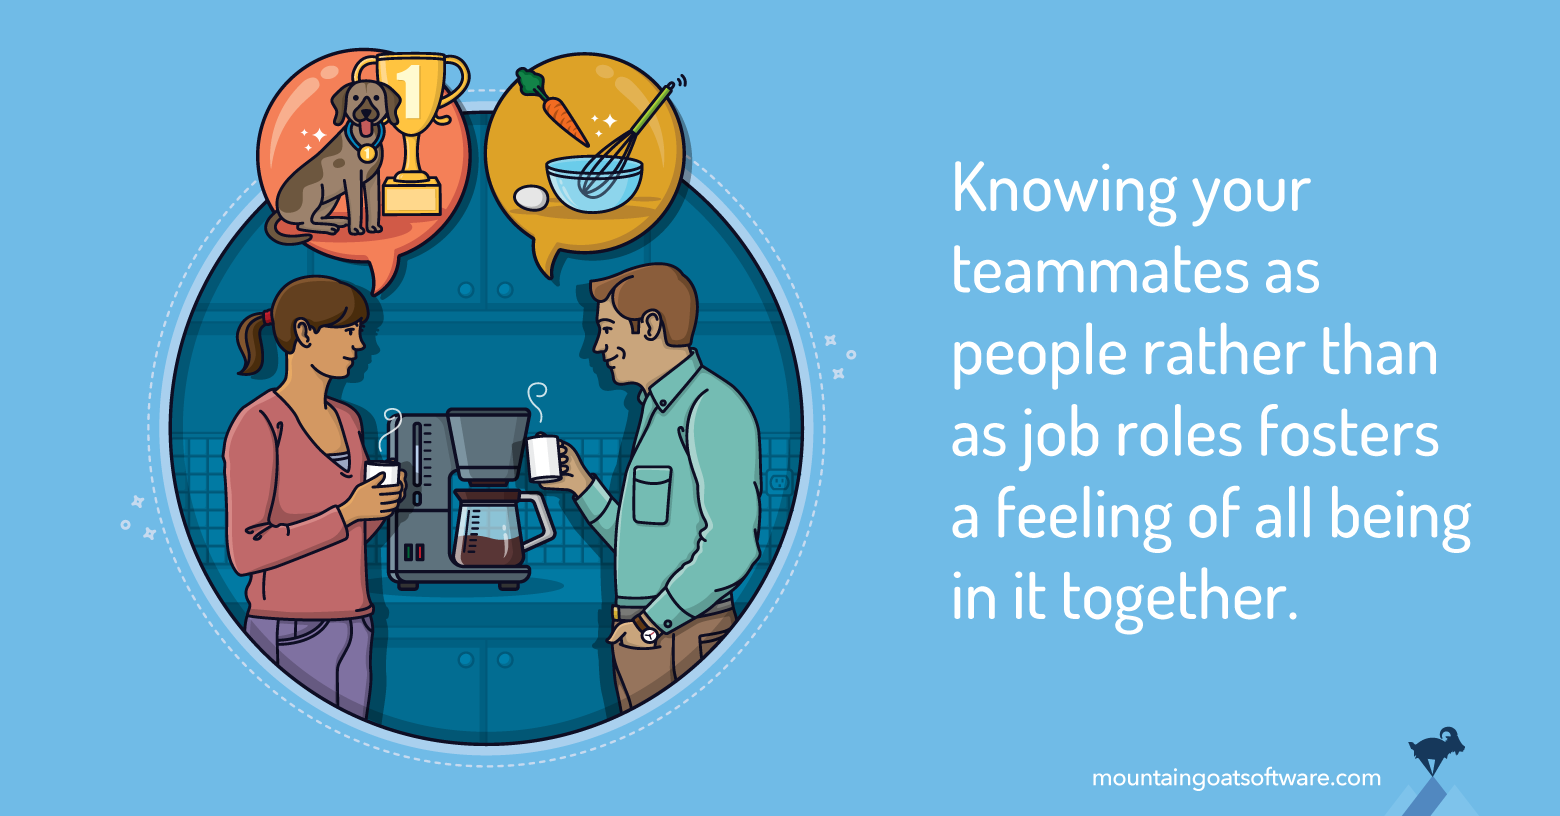 25 Questions that Will Help You Know Your Teammates Better